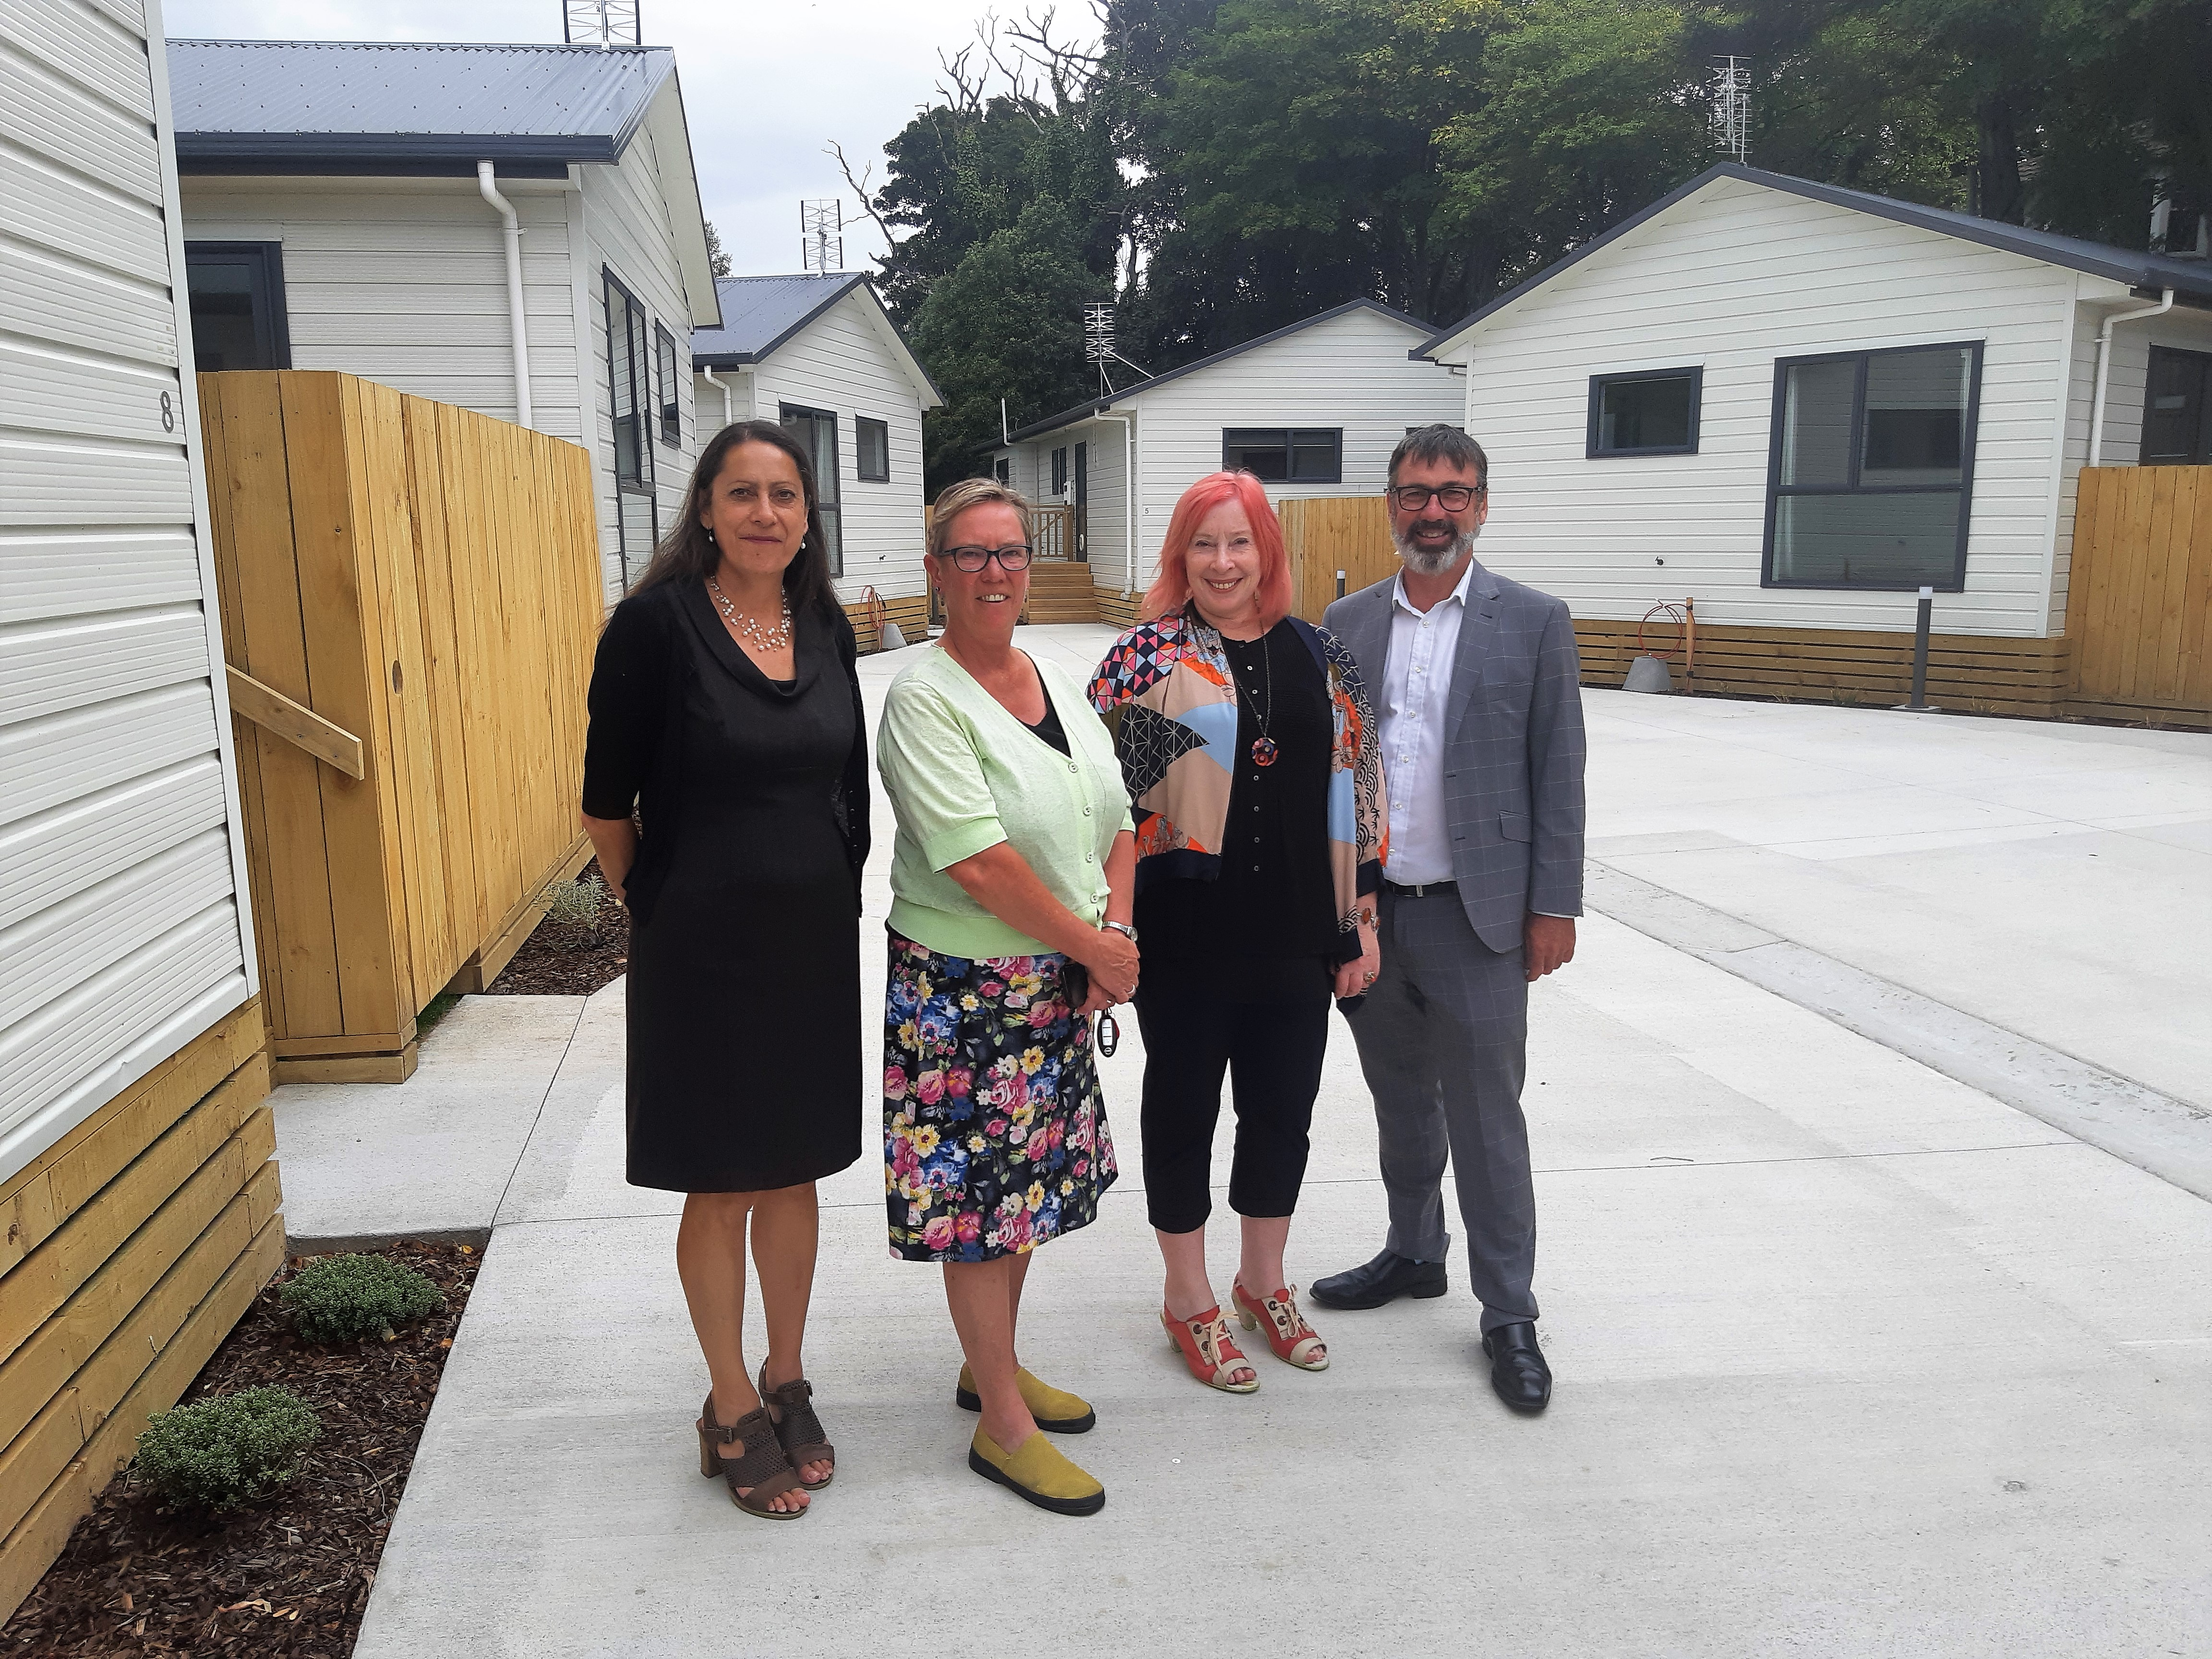 ŌCHT chief executive Cate Kearney (second from right) with Christchurch MPs Poto Williams (left), Ruth Dyson and Duncan Webb at OCHT's first development, Louisson Place, in Opawa, in 2019.